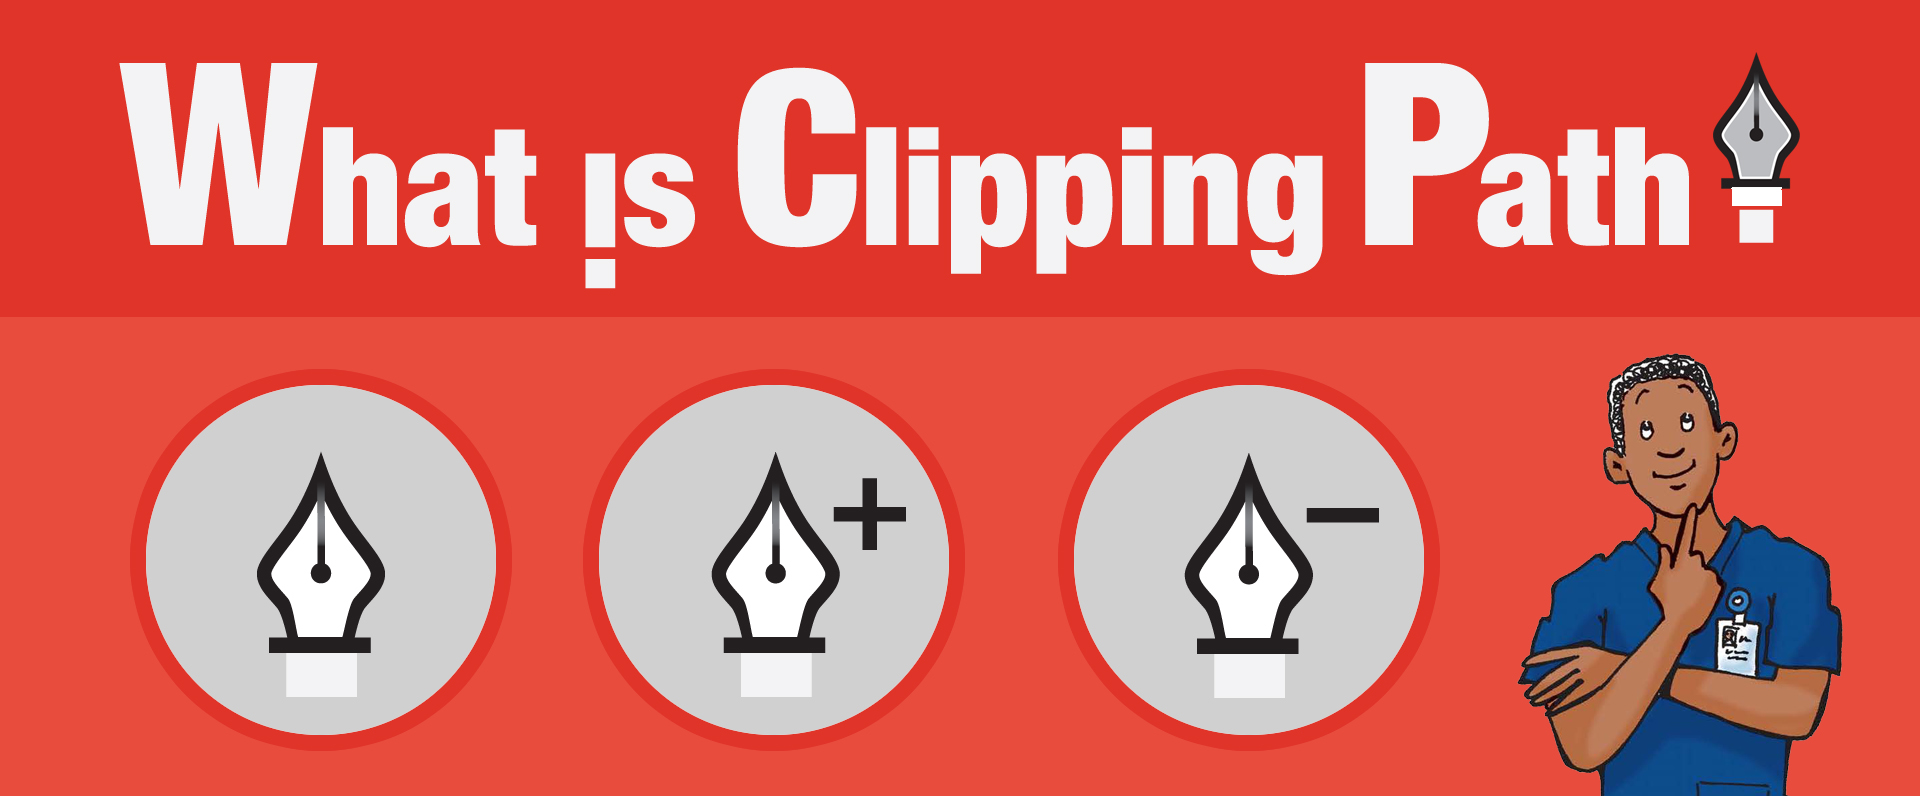 What Clipping Path